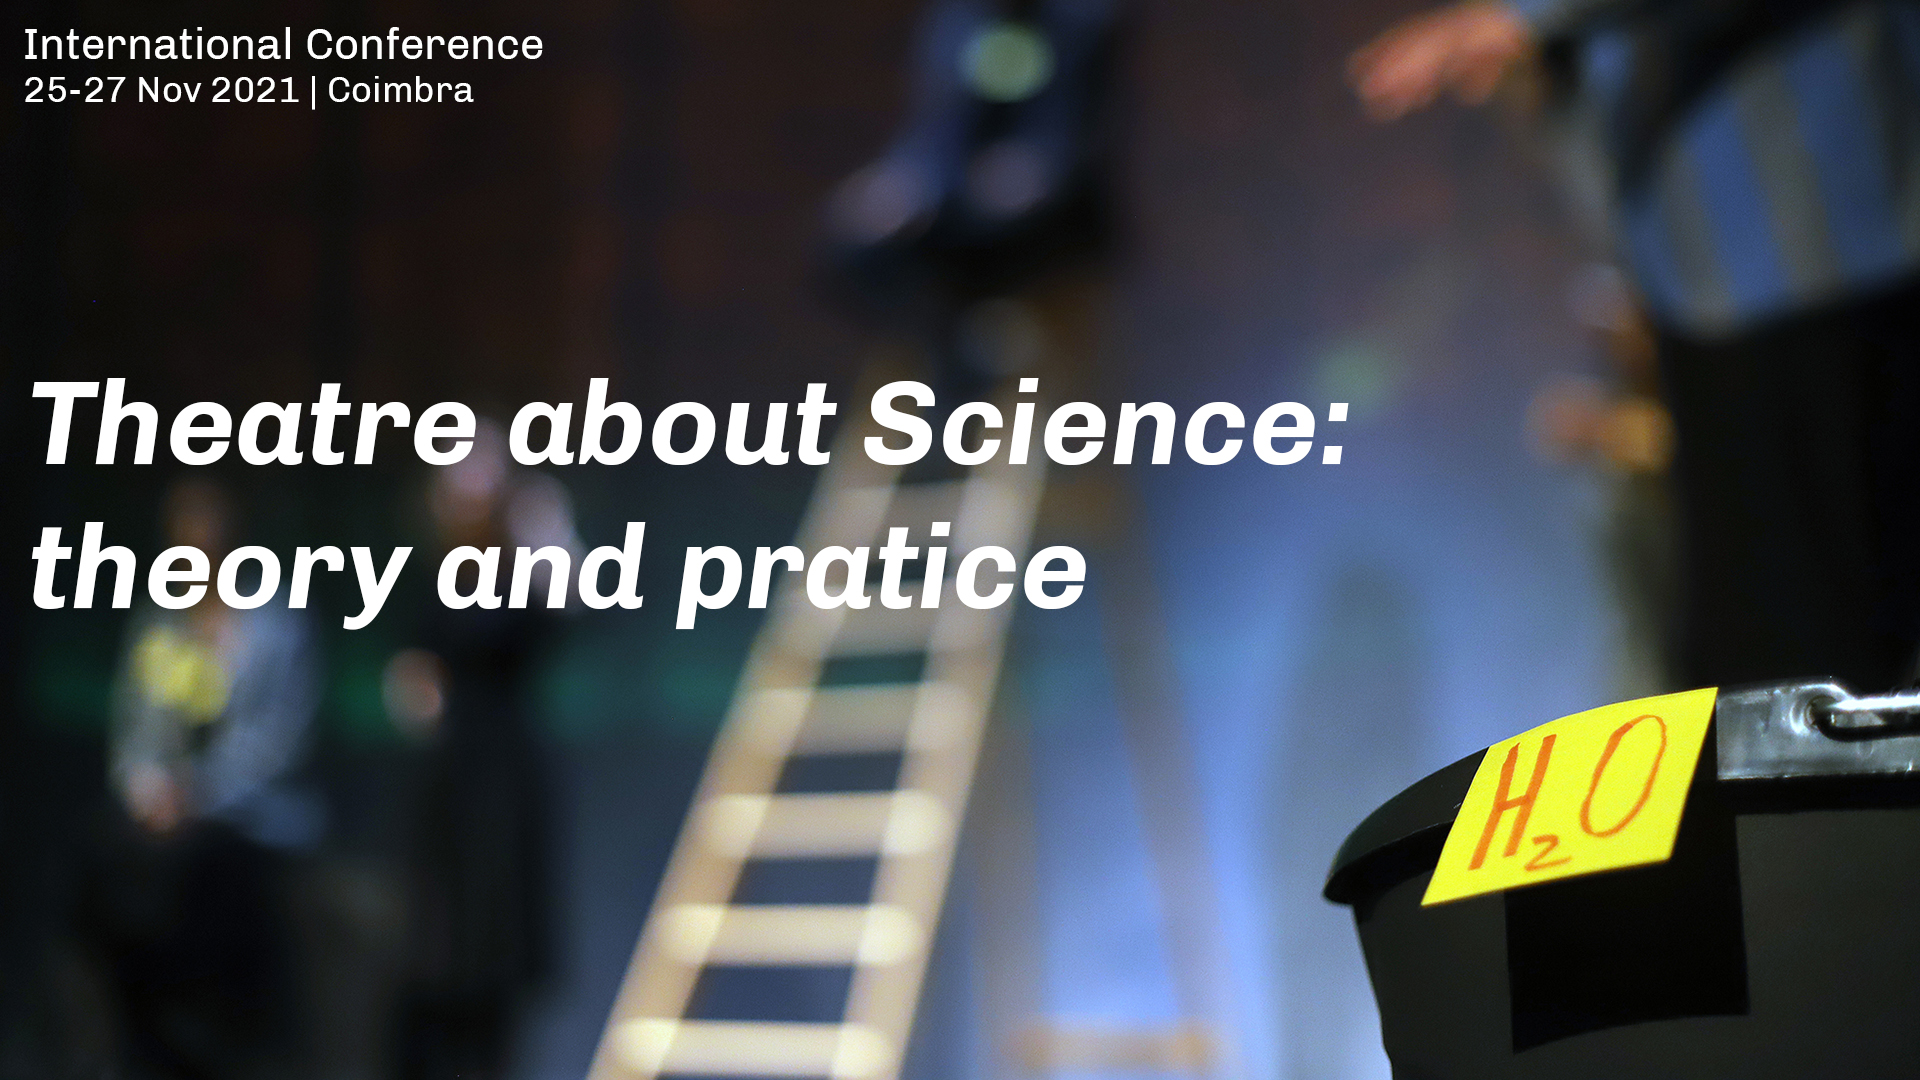 Theatre about Science